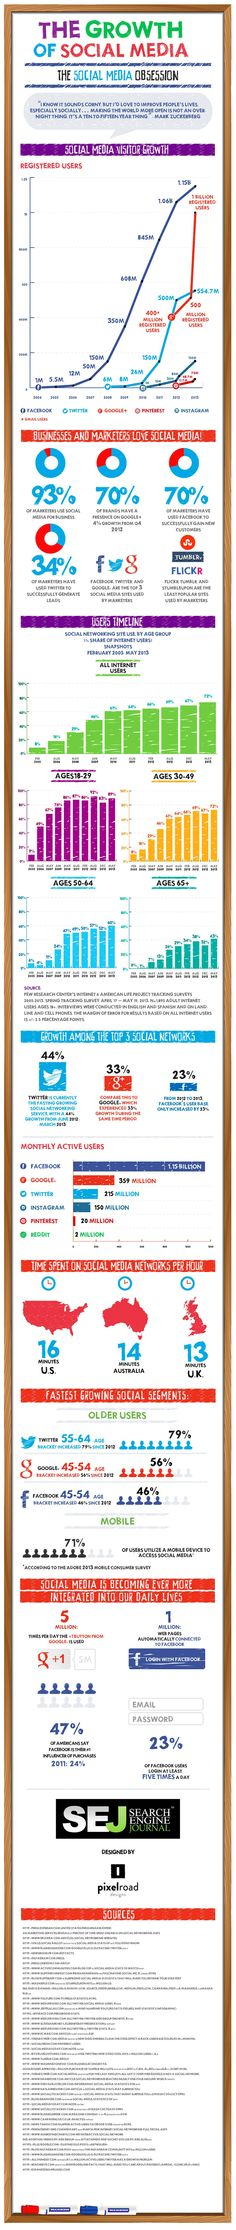 2014 - The Growth of Social Media